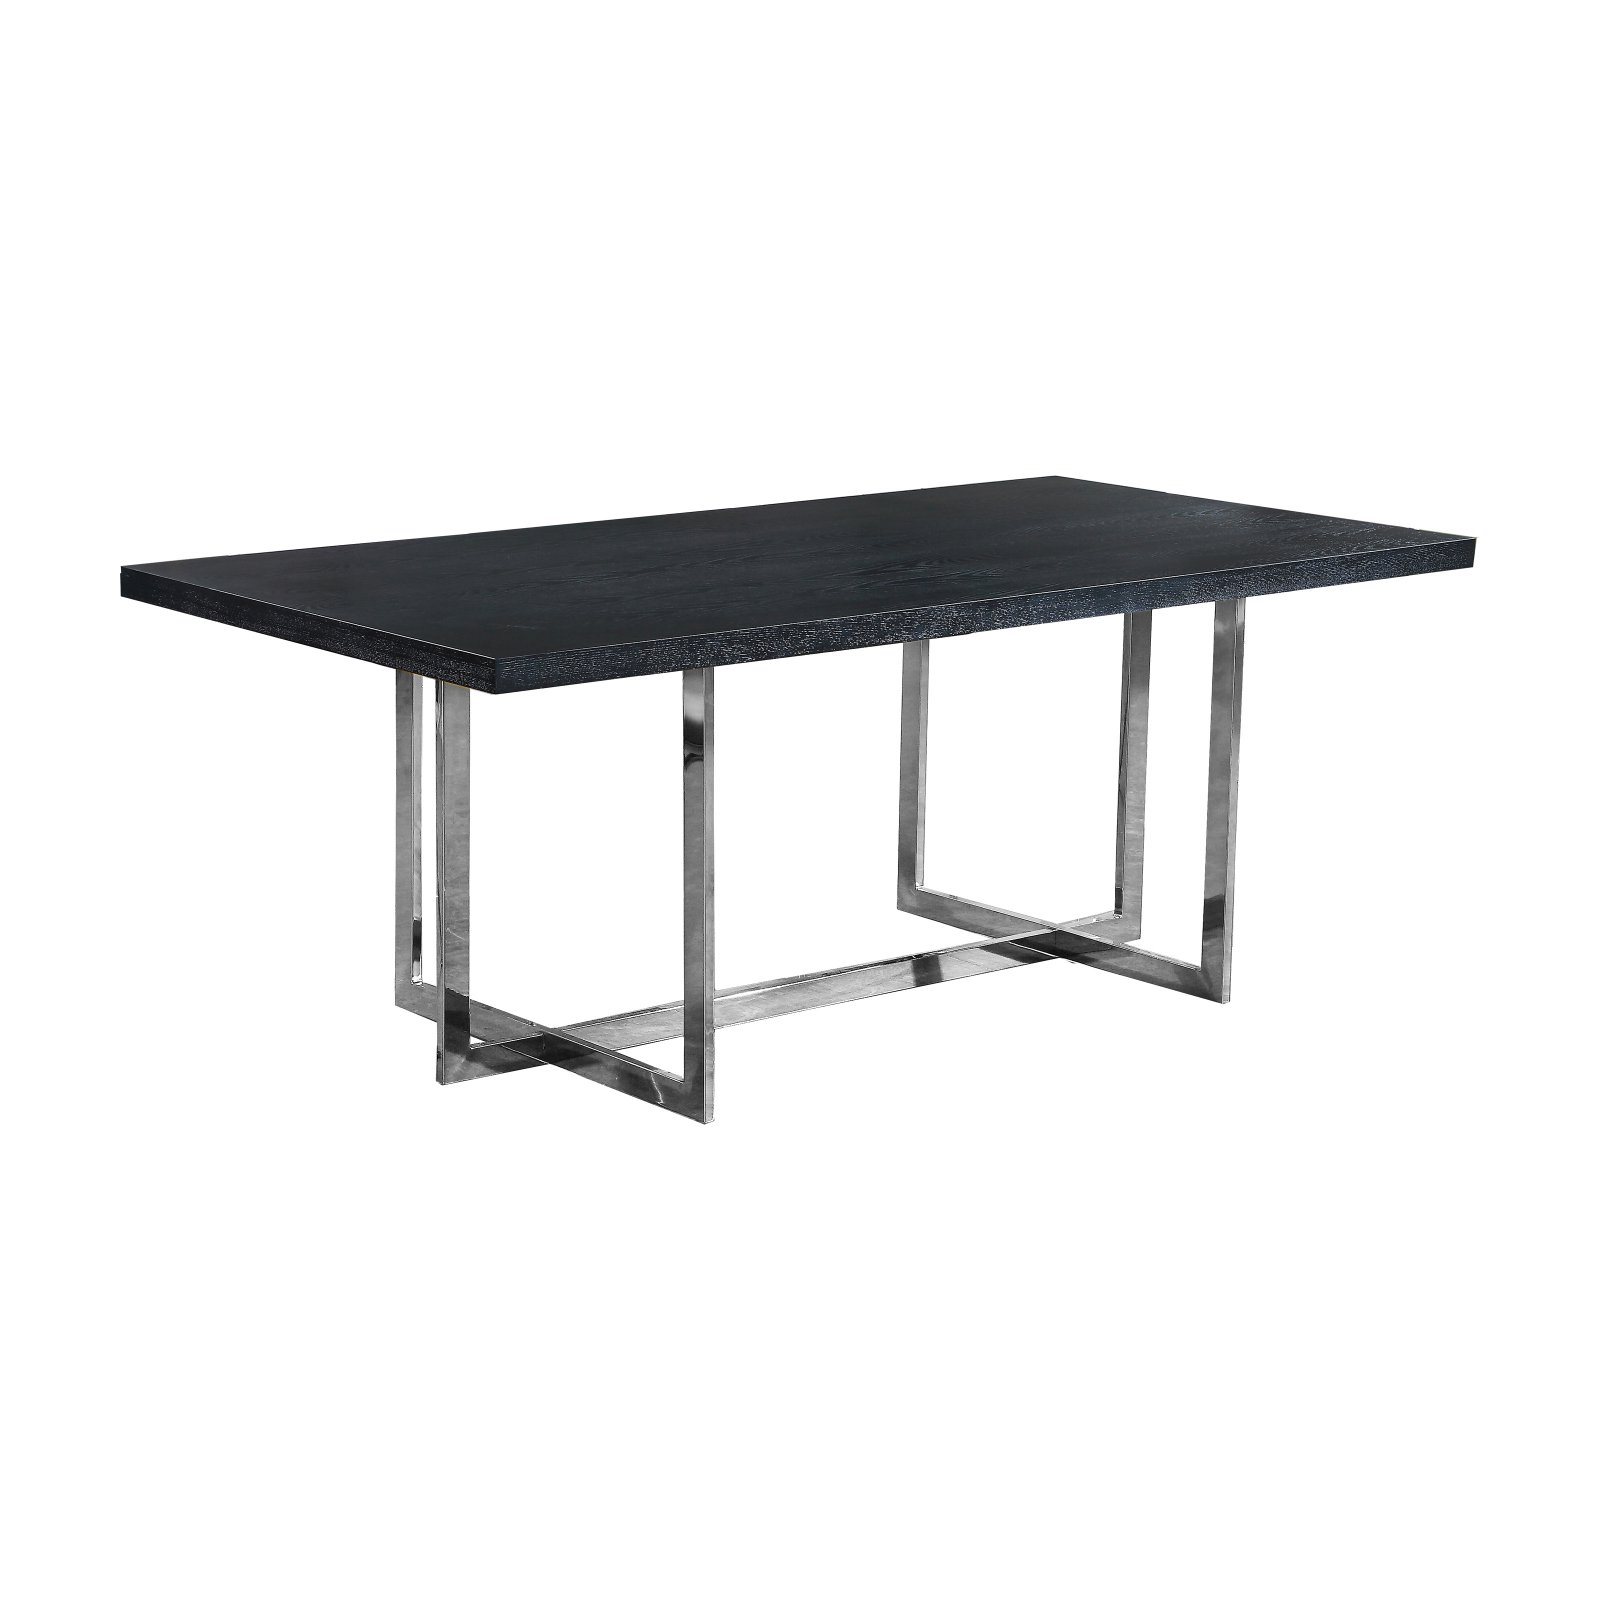 Meridian Furniture Inc Elle Rectangular Dining Table For Well Known Charcoal Transitional 6 Seating Rectangular Dining Tables (View 8 of 25)